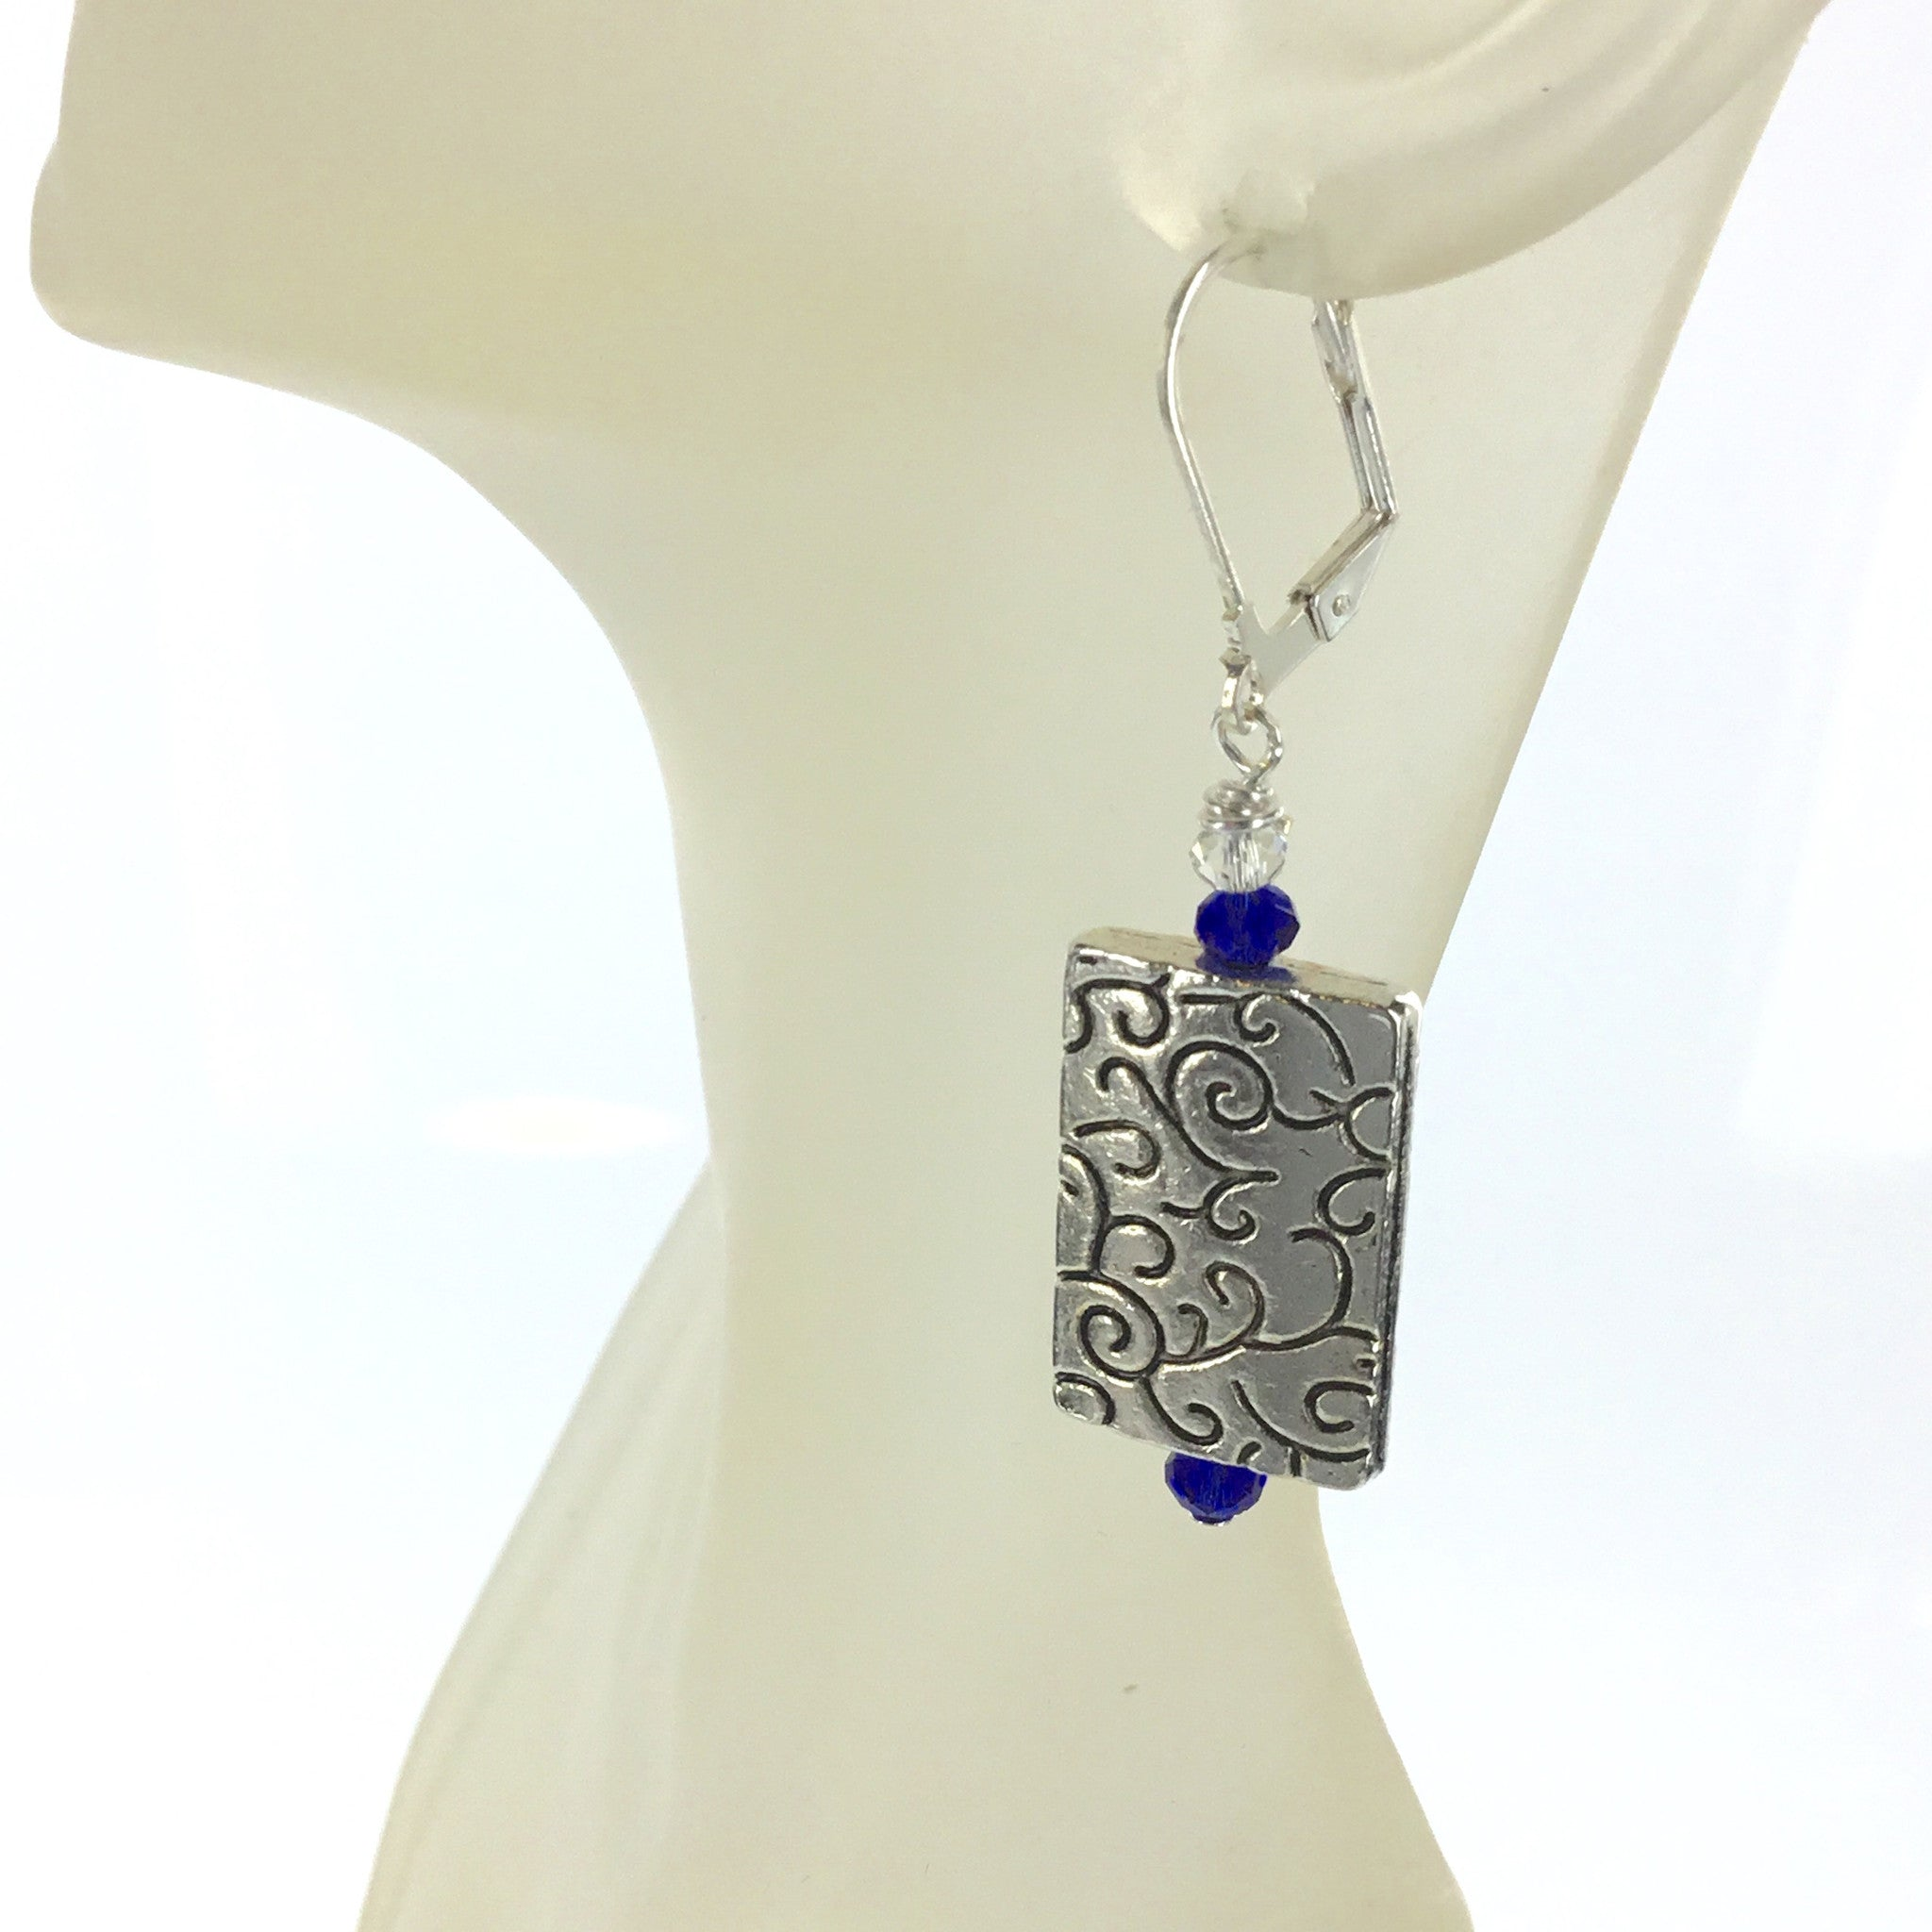 Blue and White Crystal Silver Earring - Real Chic Boutique  - 2